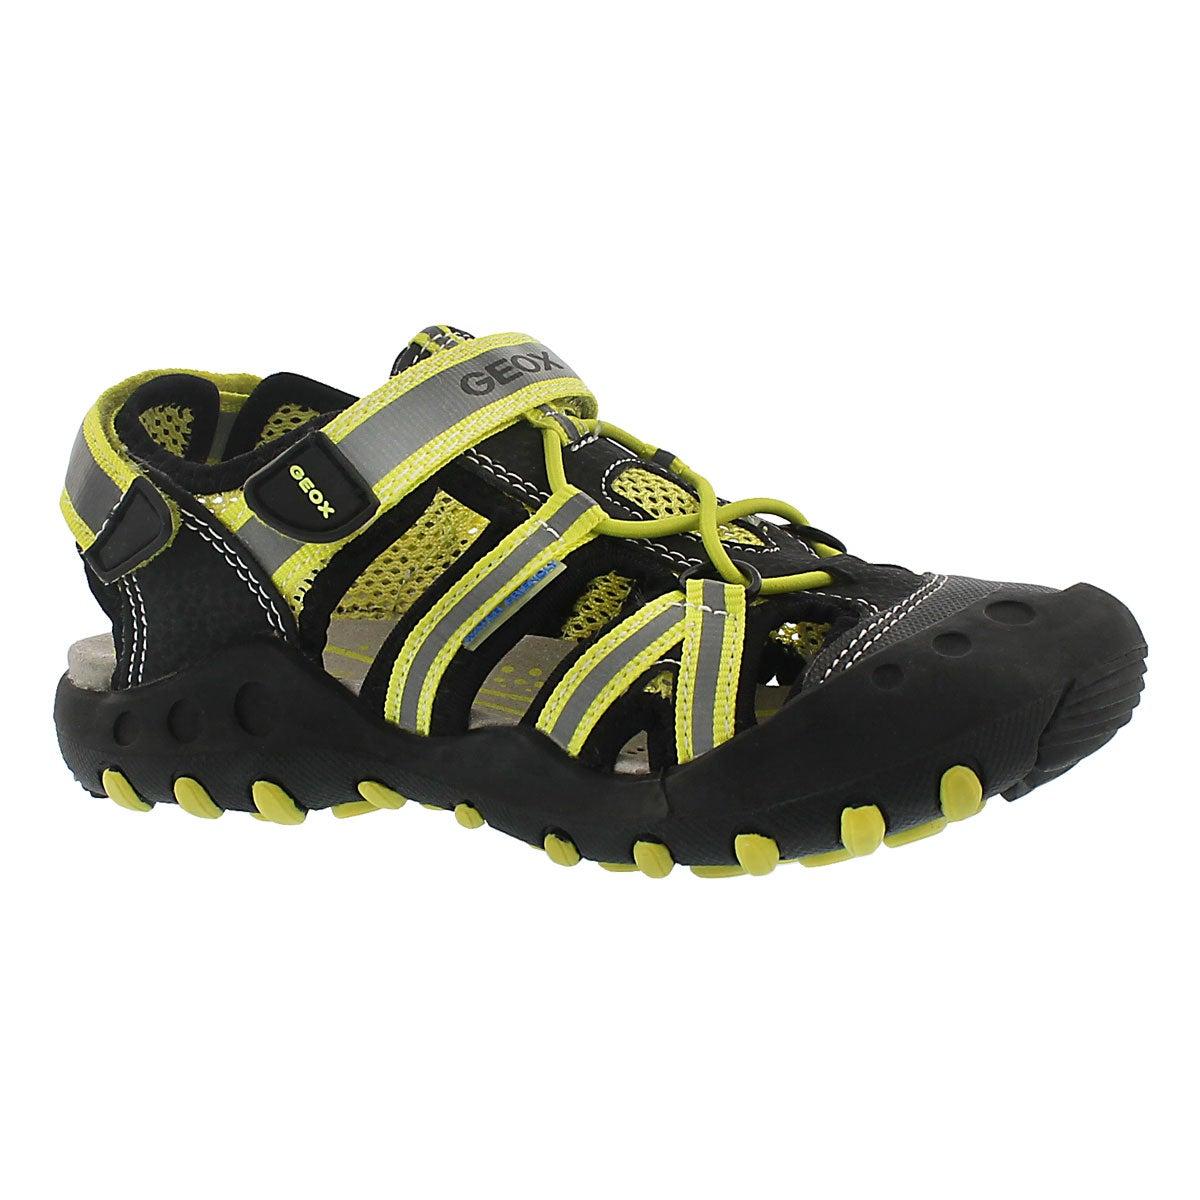 Boys' KYLE black/lime fisherman sandals